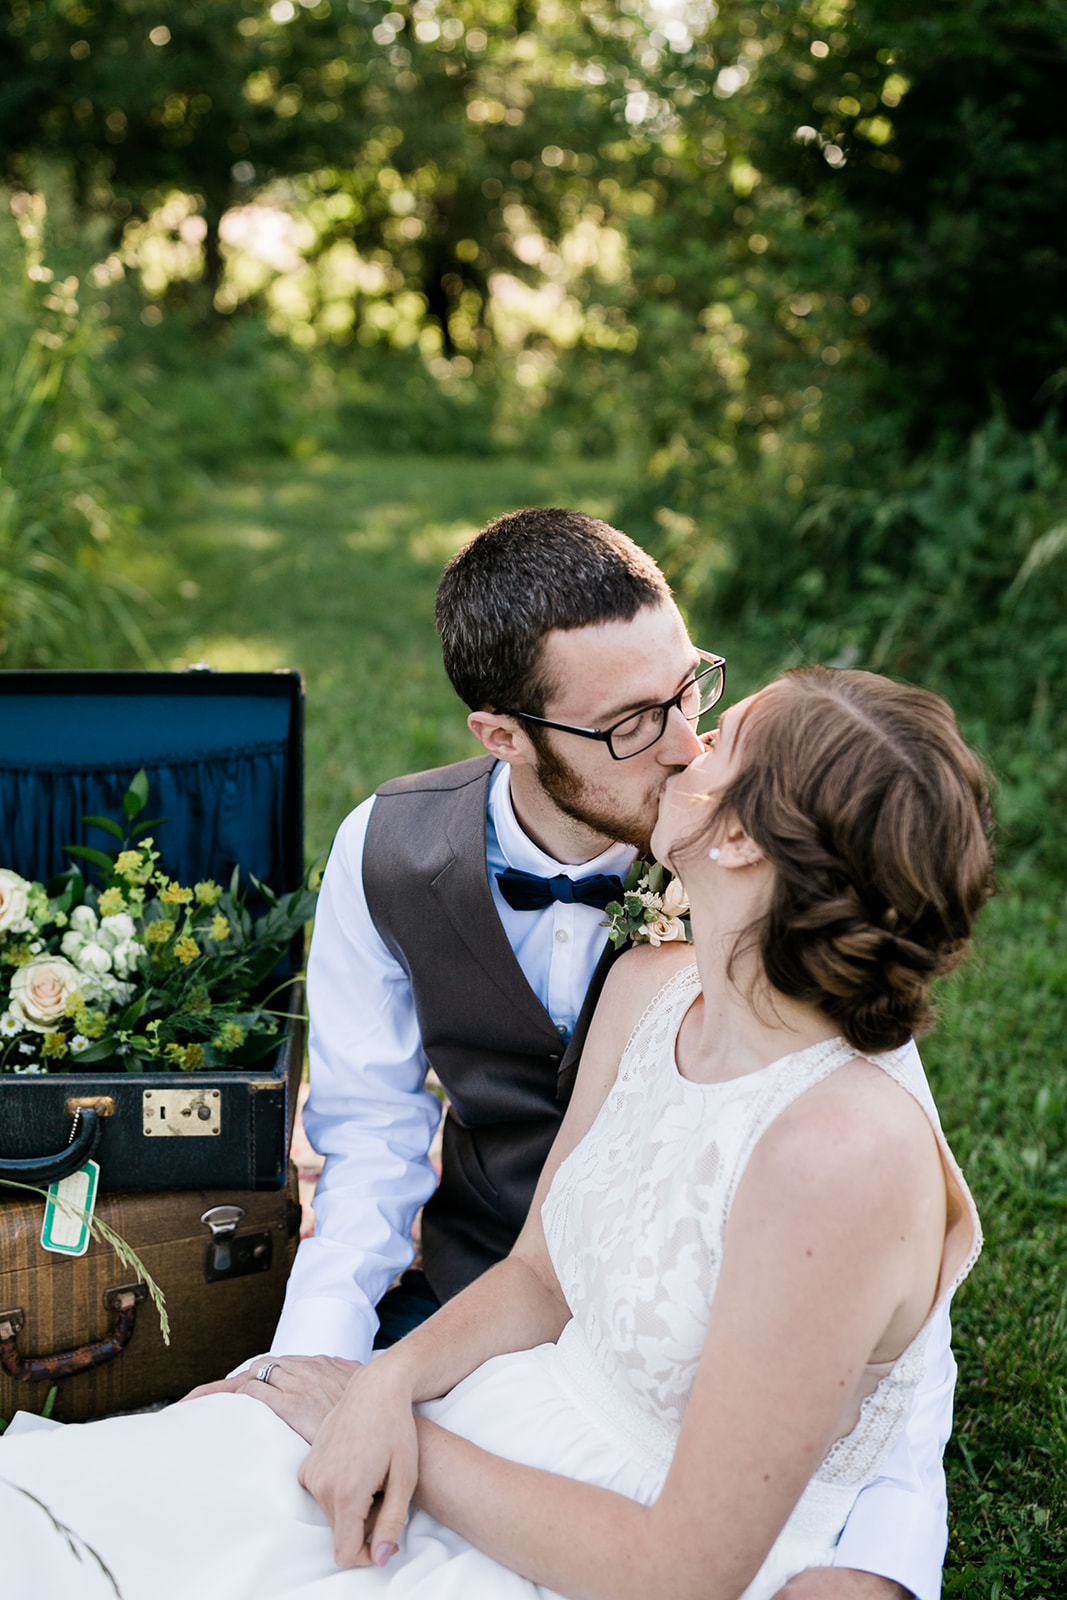 Wedding couple in photo shoot in Des Moines Iowa, sitting on yellow blanket, and kissing, vintage style props sit in the background